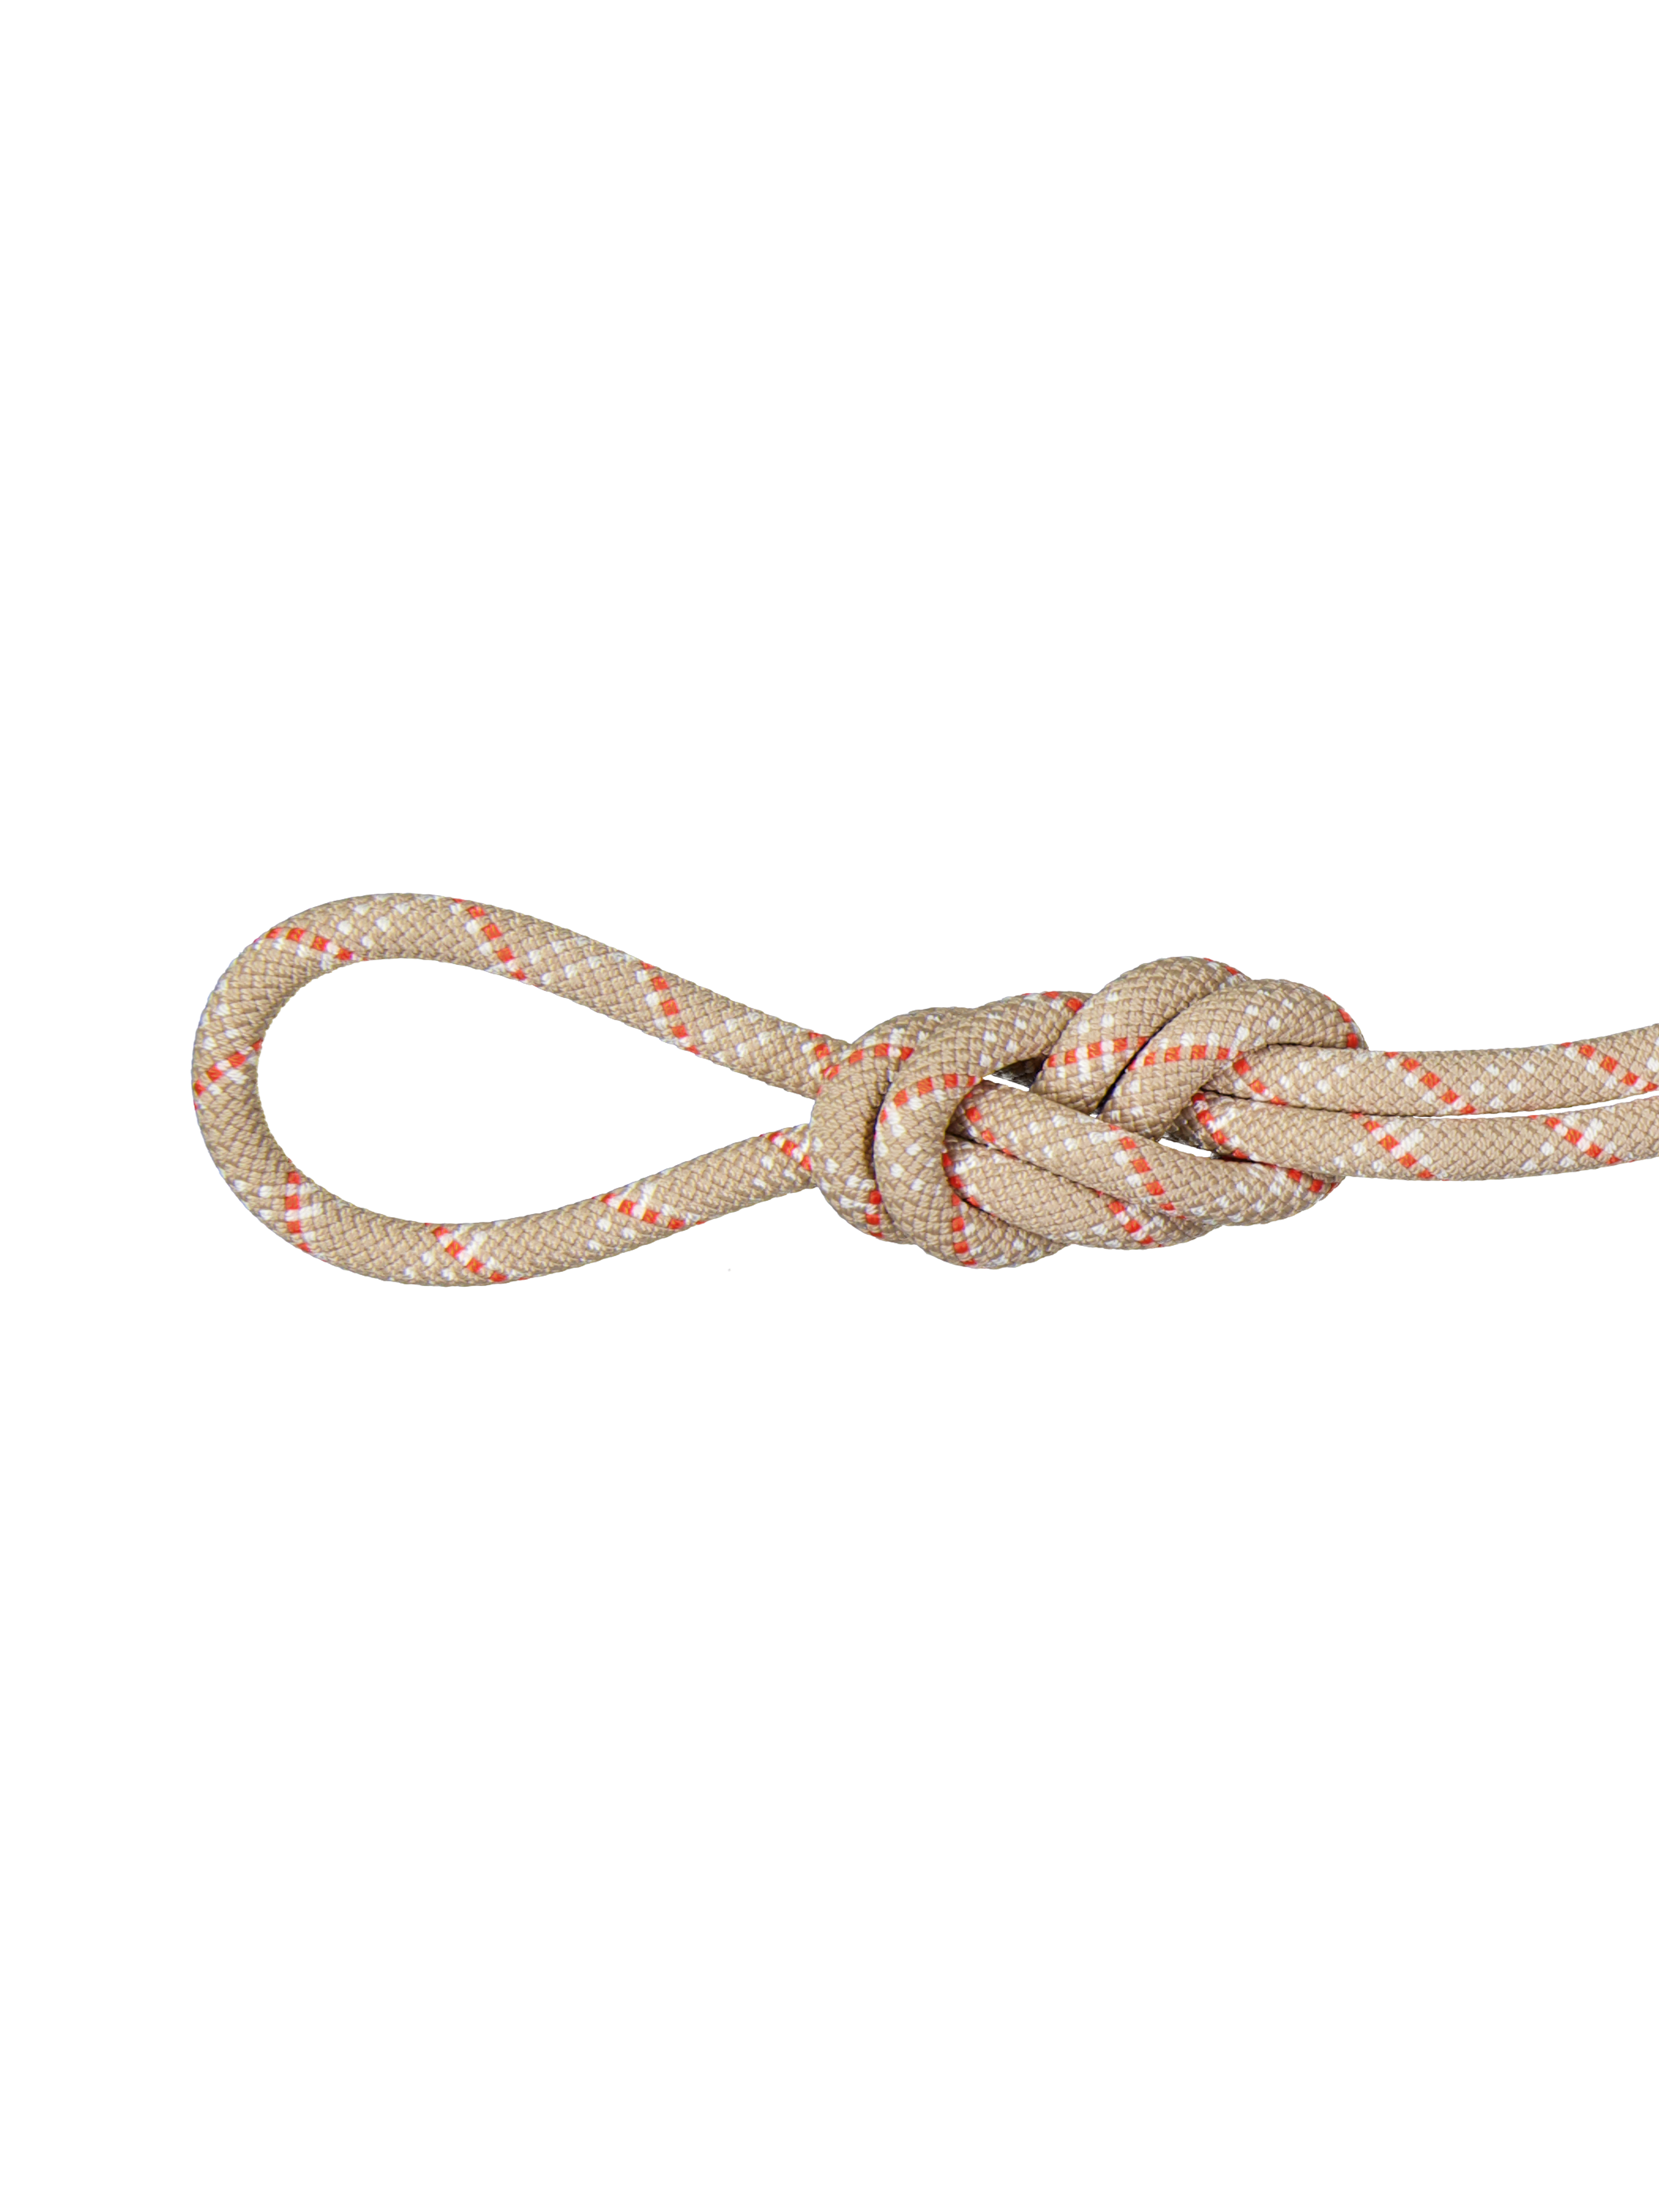 9.5 Gym Classic Rope product image